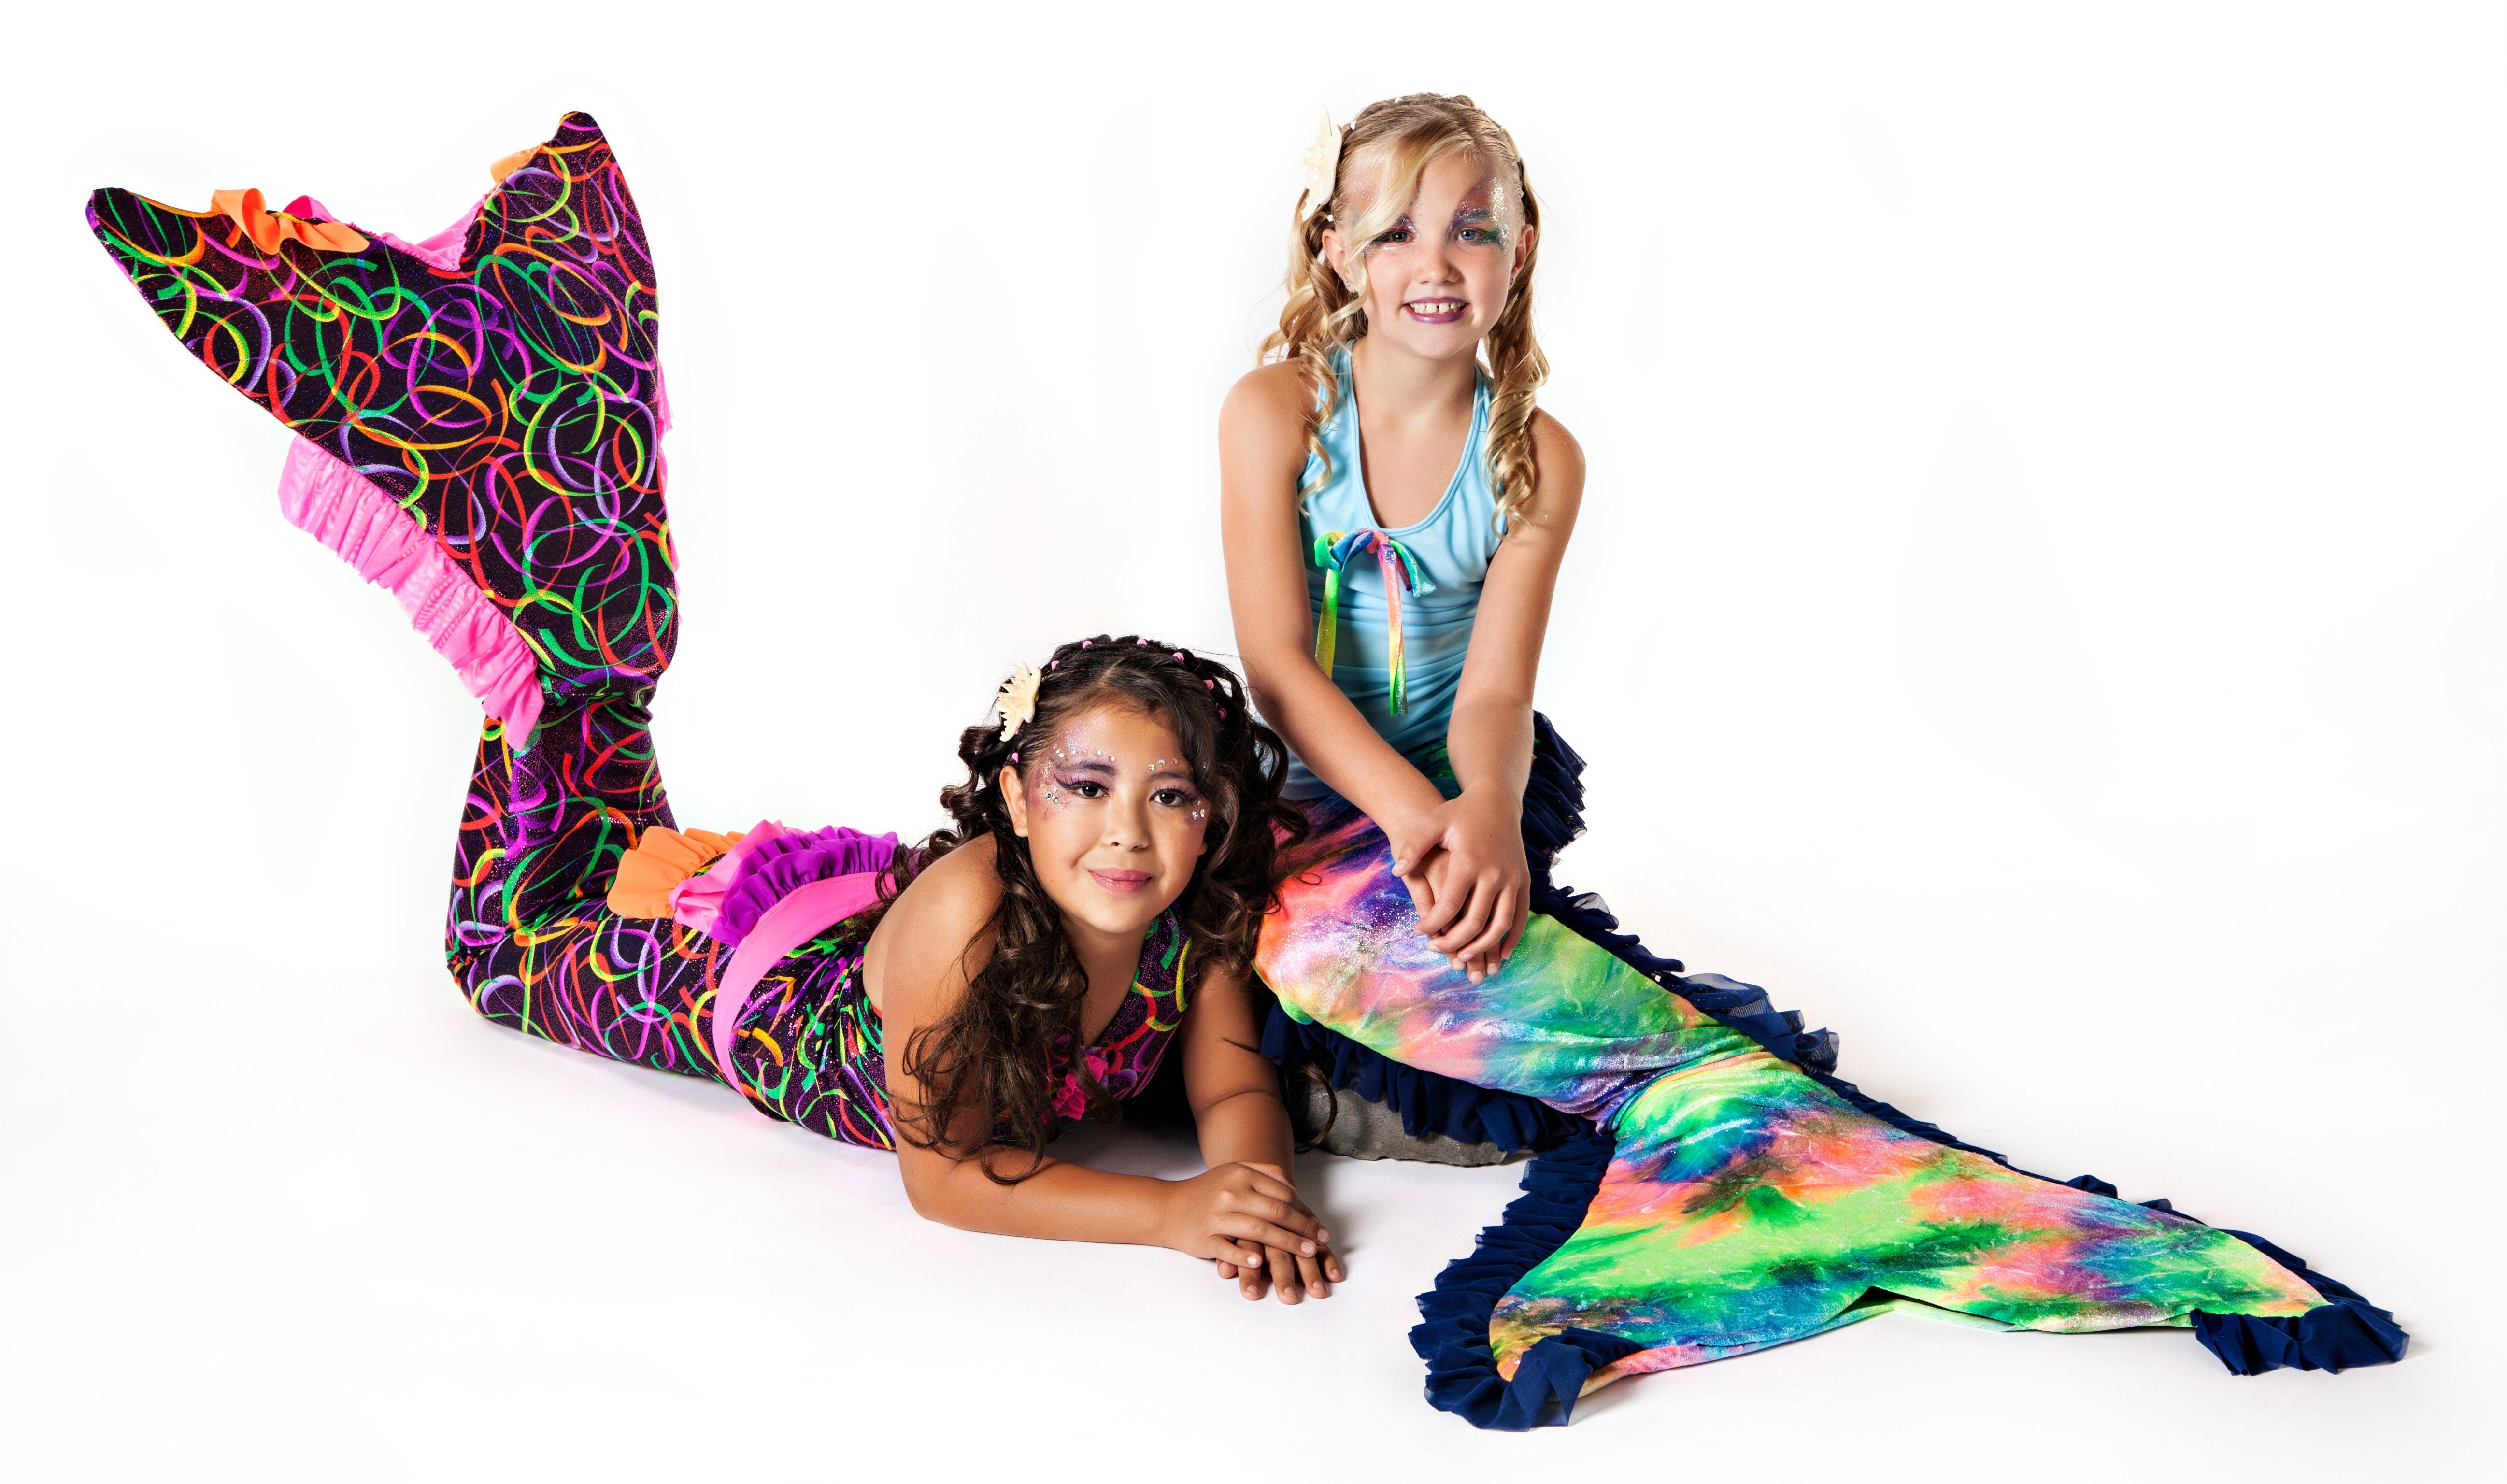 Functional mermaid tails  From splashmermaidtails.com